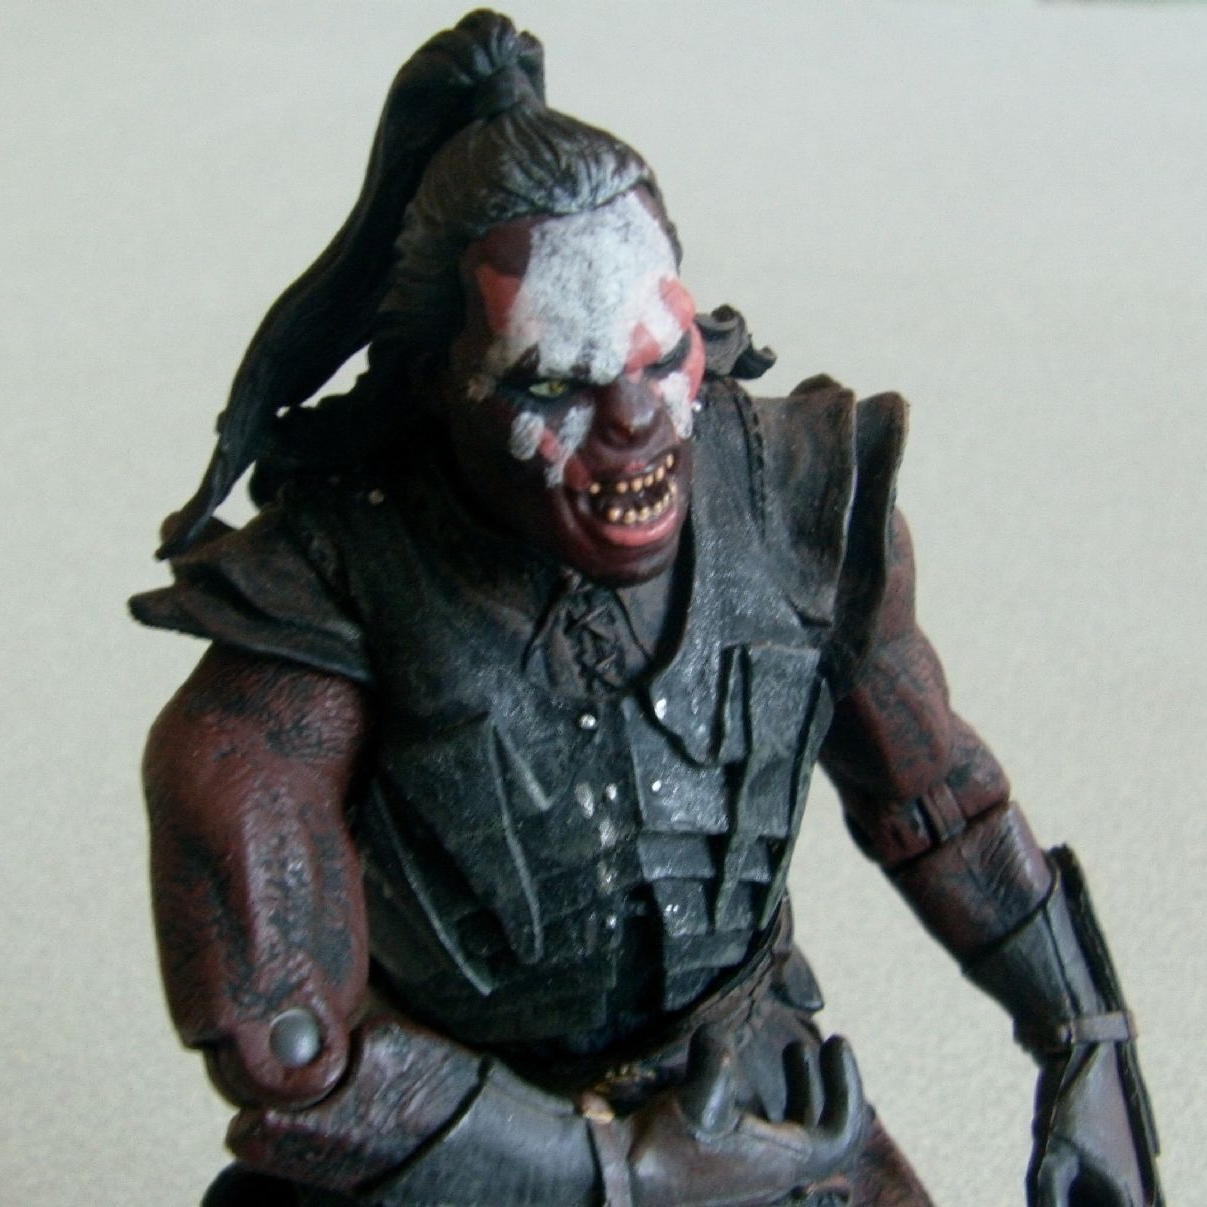 lord of the rings lurtz uruk hai action figure loose action figures best action figures lord lord of the rings lurtz uruk hai action